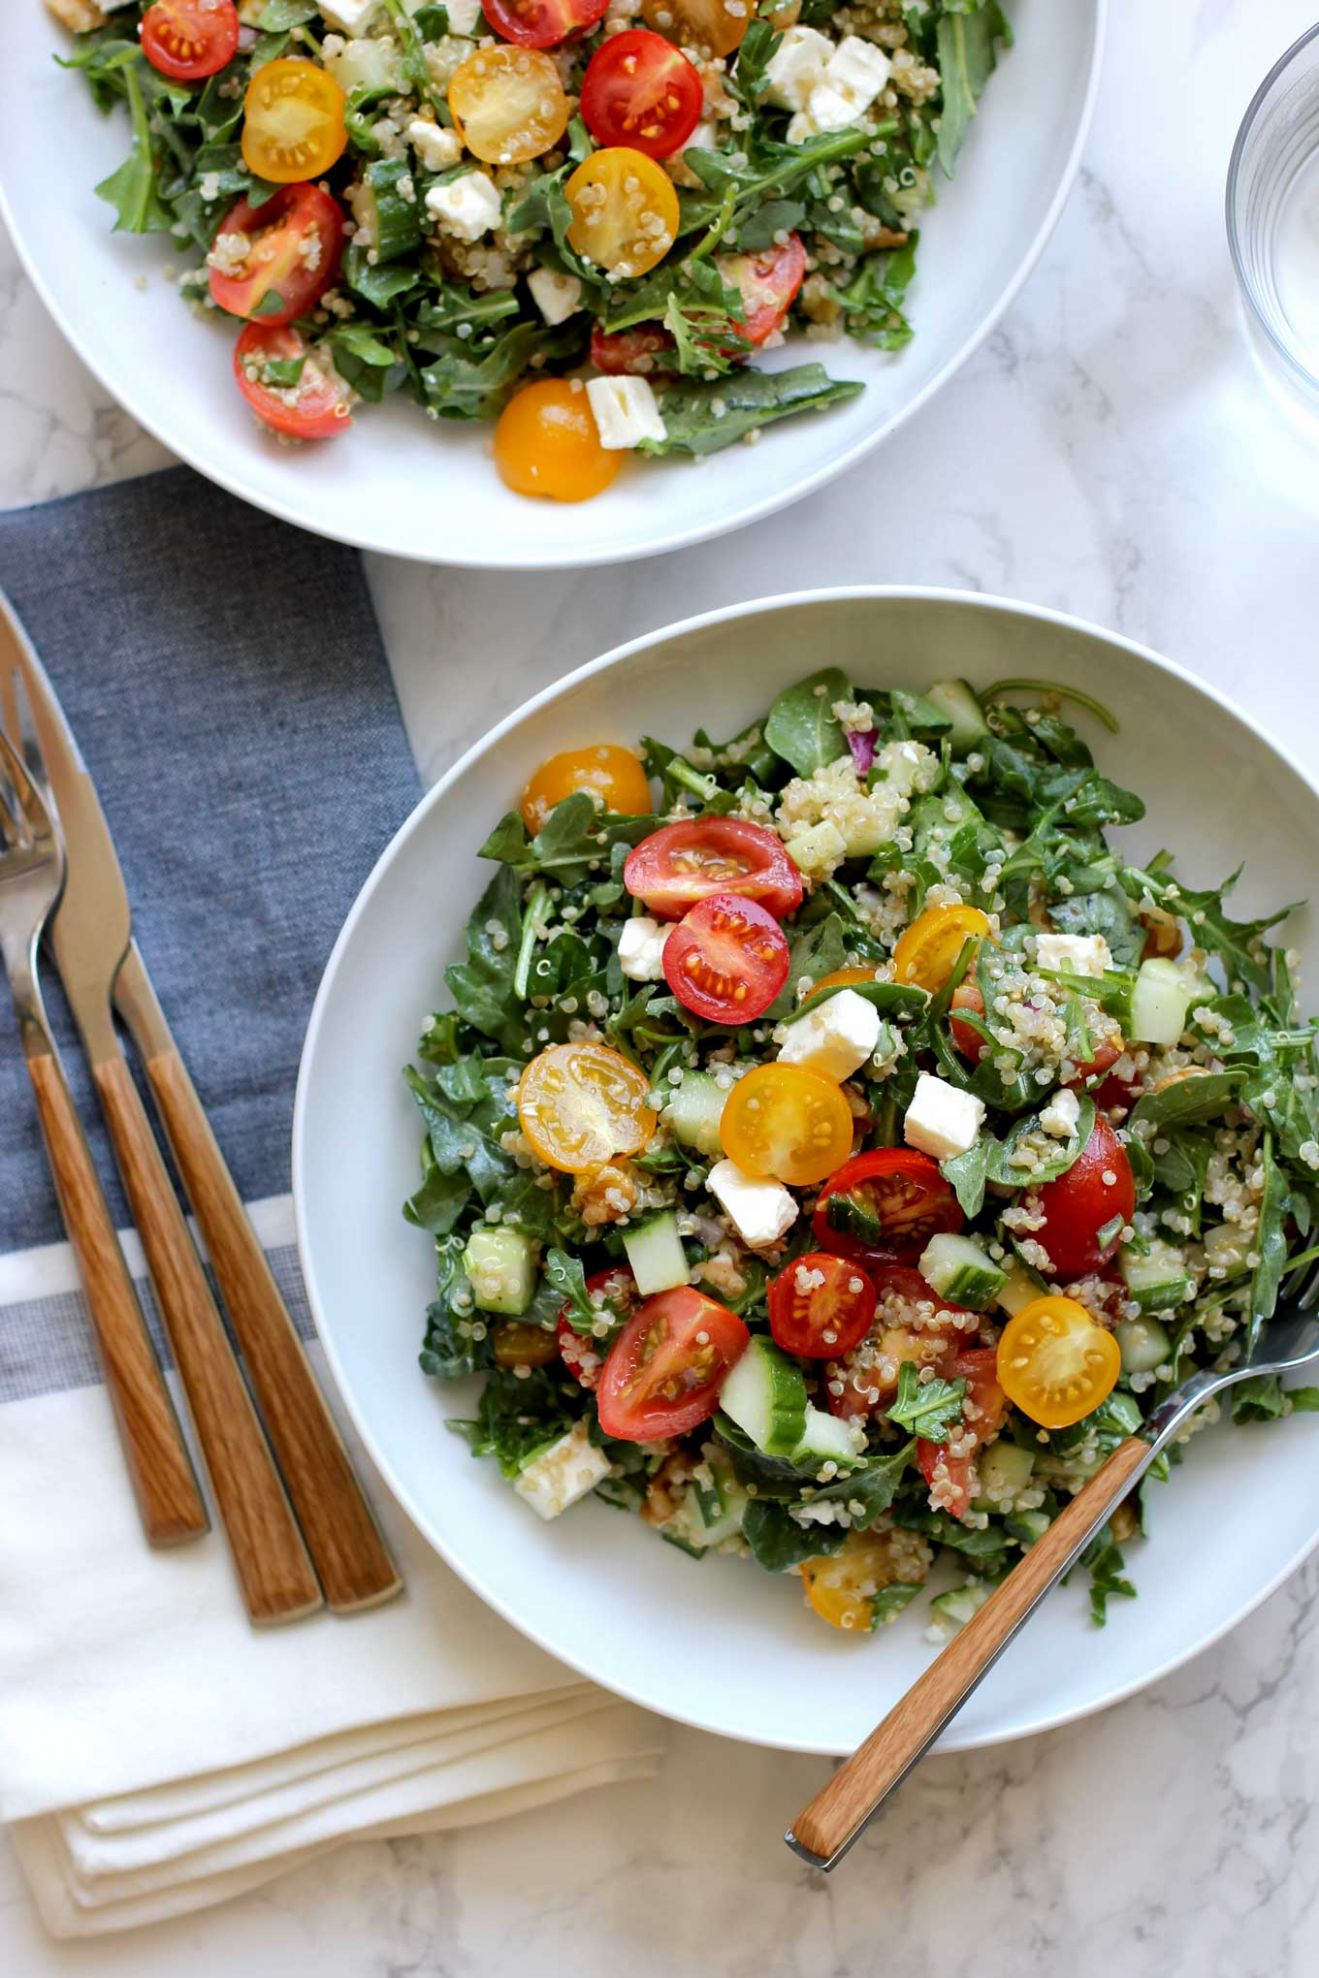 Quinoa Salad with Cherry Tomatoes and Cucumbers - Summer Recipes With Quinoa